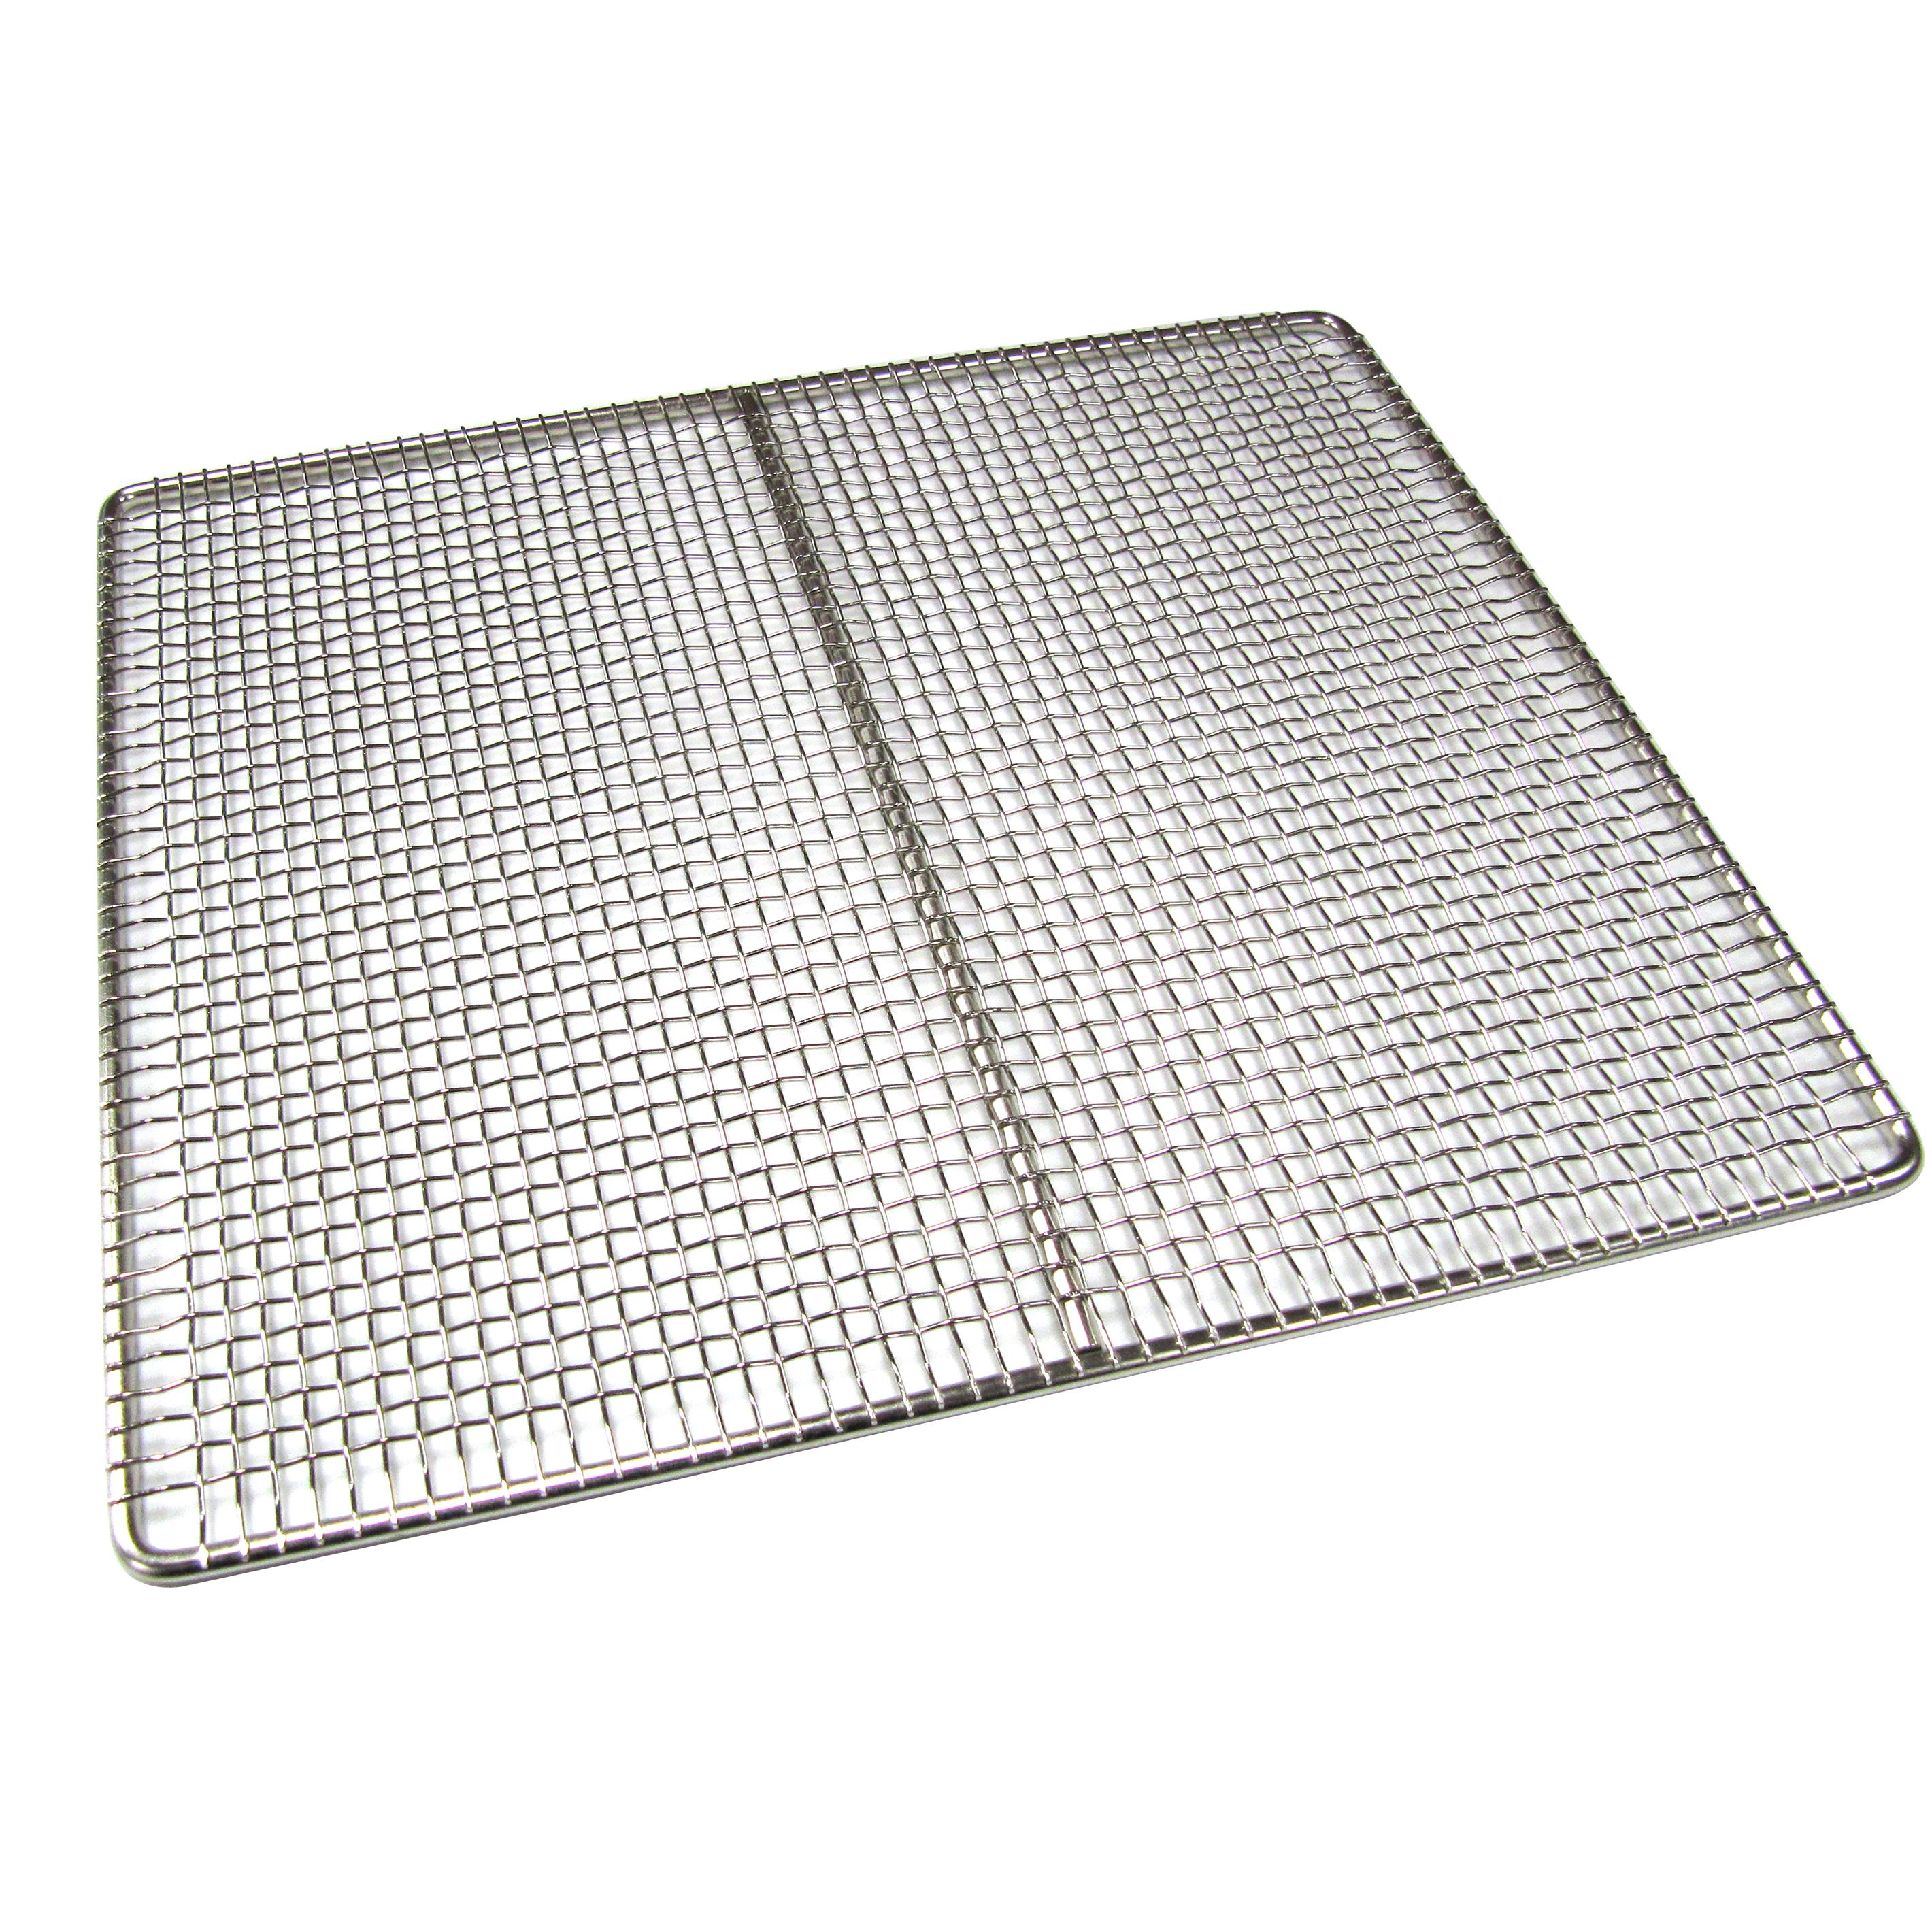 Admiral Craft GR-1412H tube screen grate